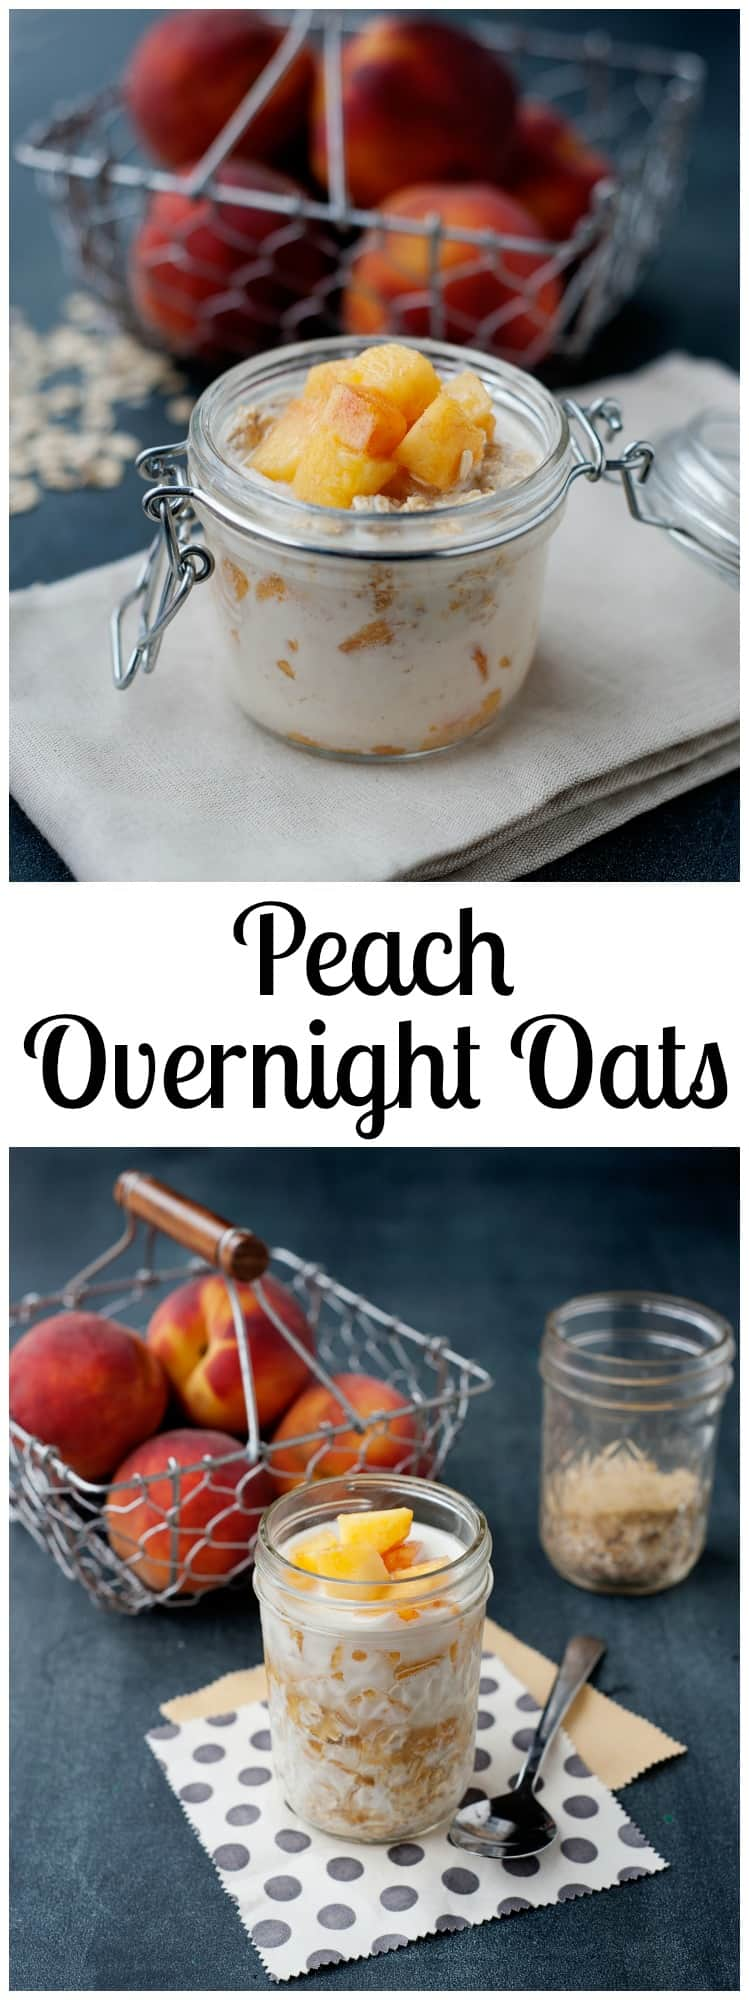 This peaches and cream overnight oats recipe is easy to make, delicious, and uses real ingredients!